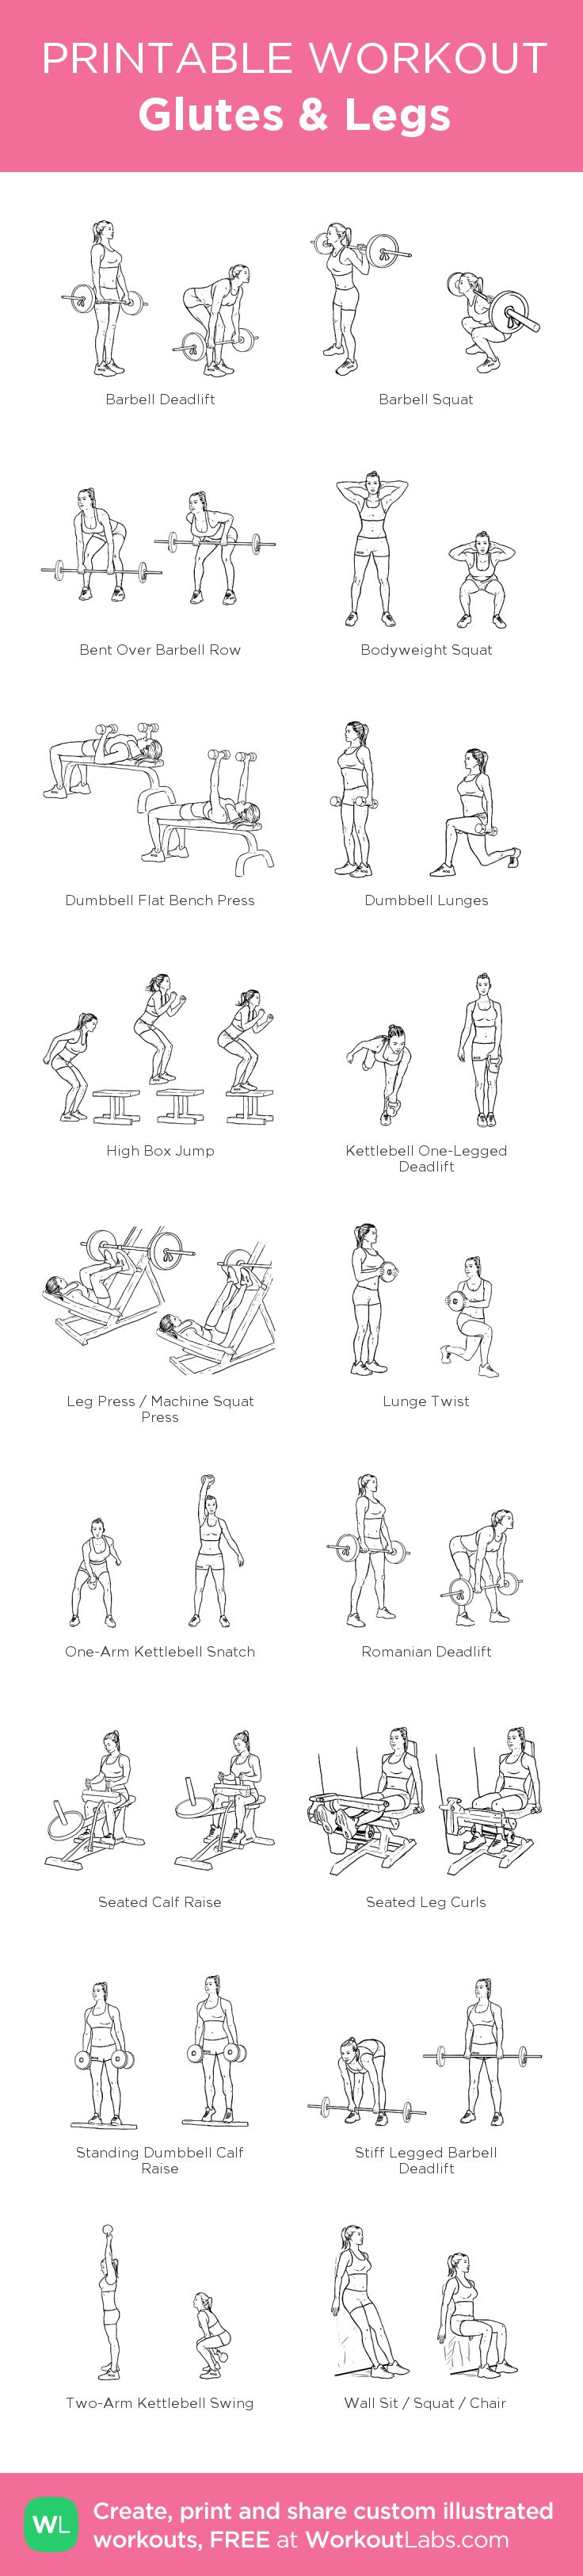 workouts a collection of health and fitness ideas to try